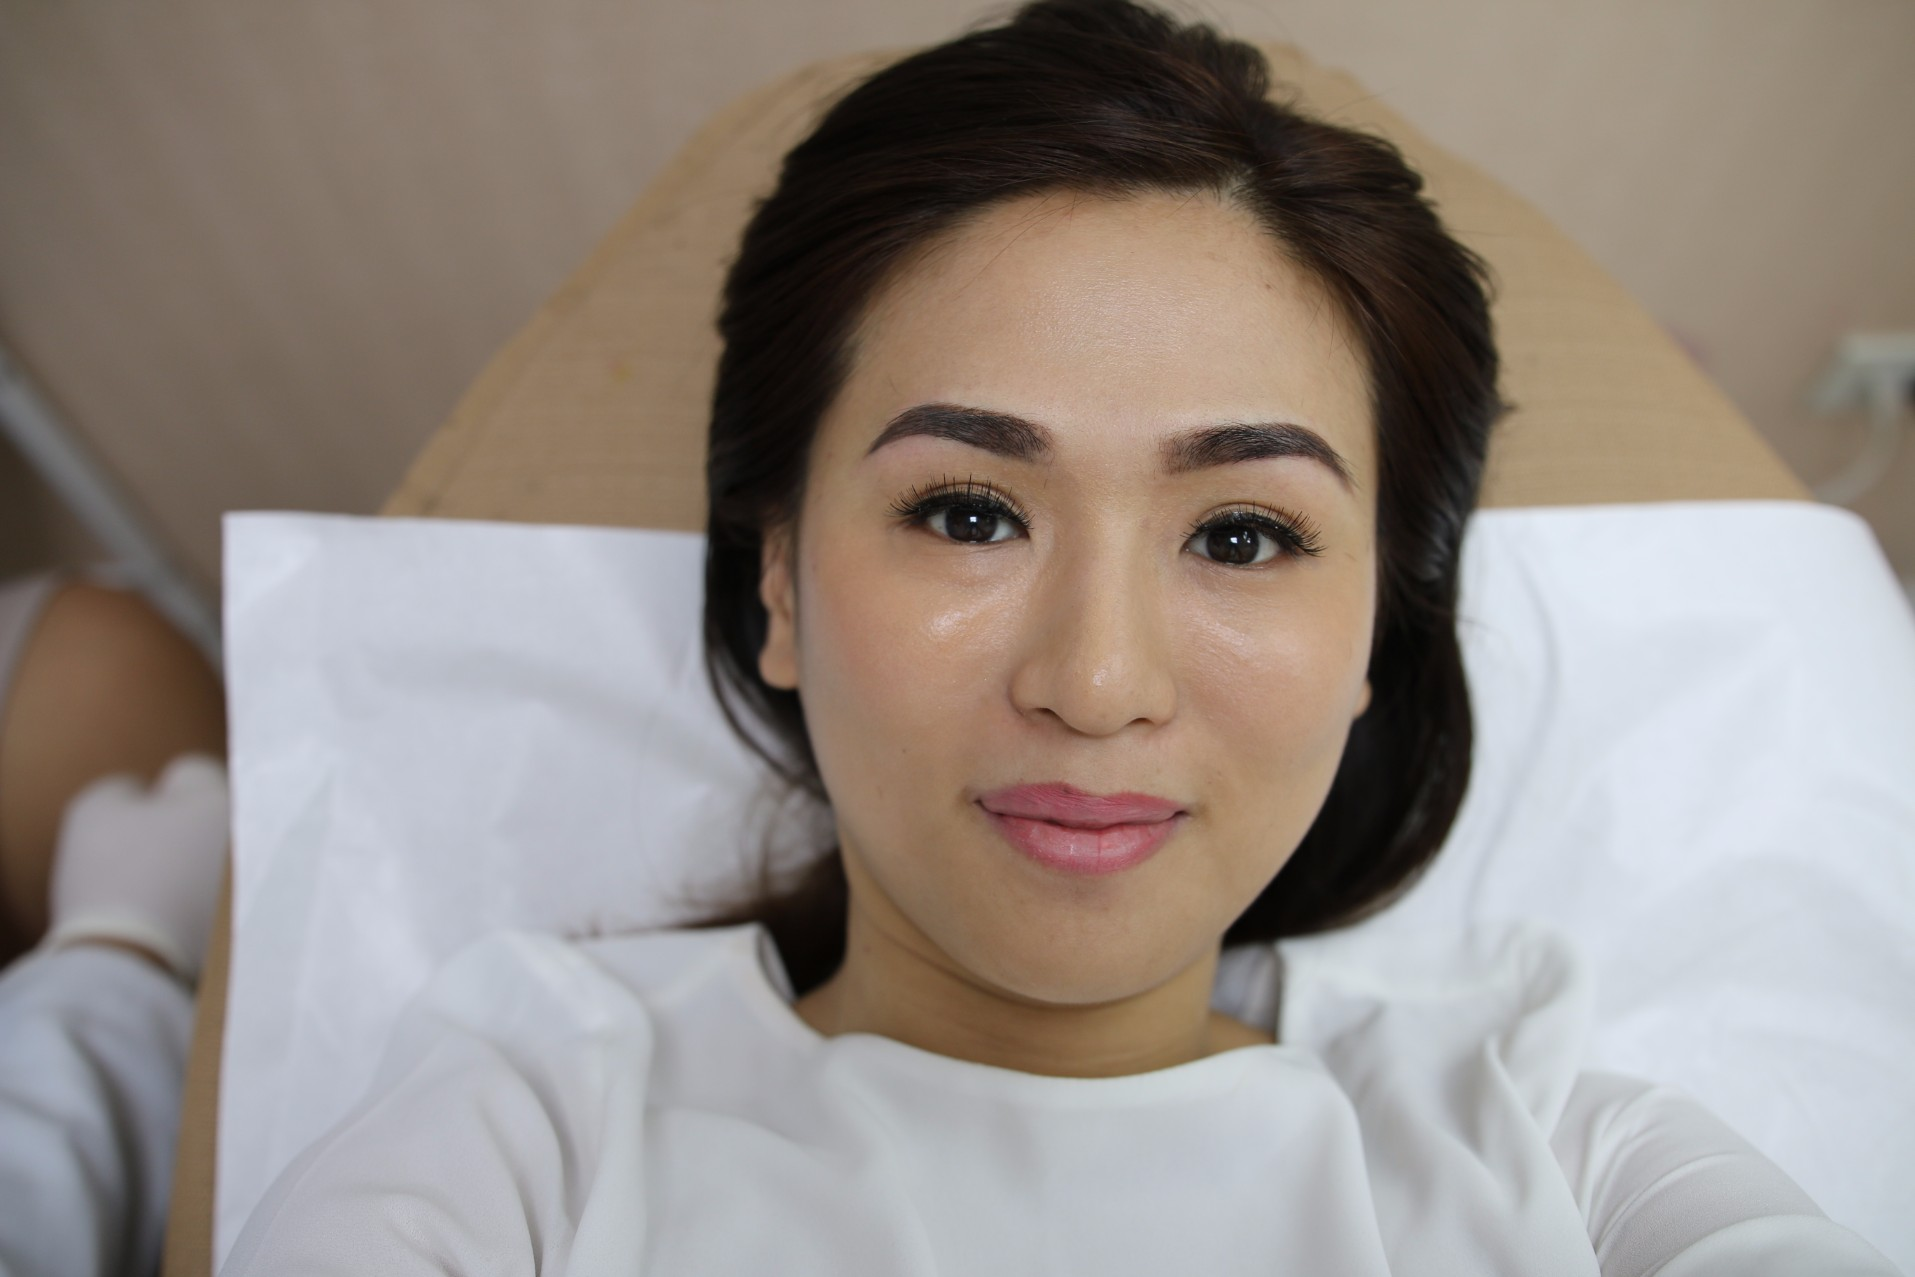 Prettylooks Cashmere Eyebrows Before And After Miss Valerie Tan